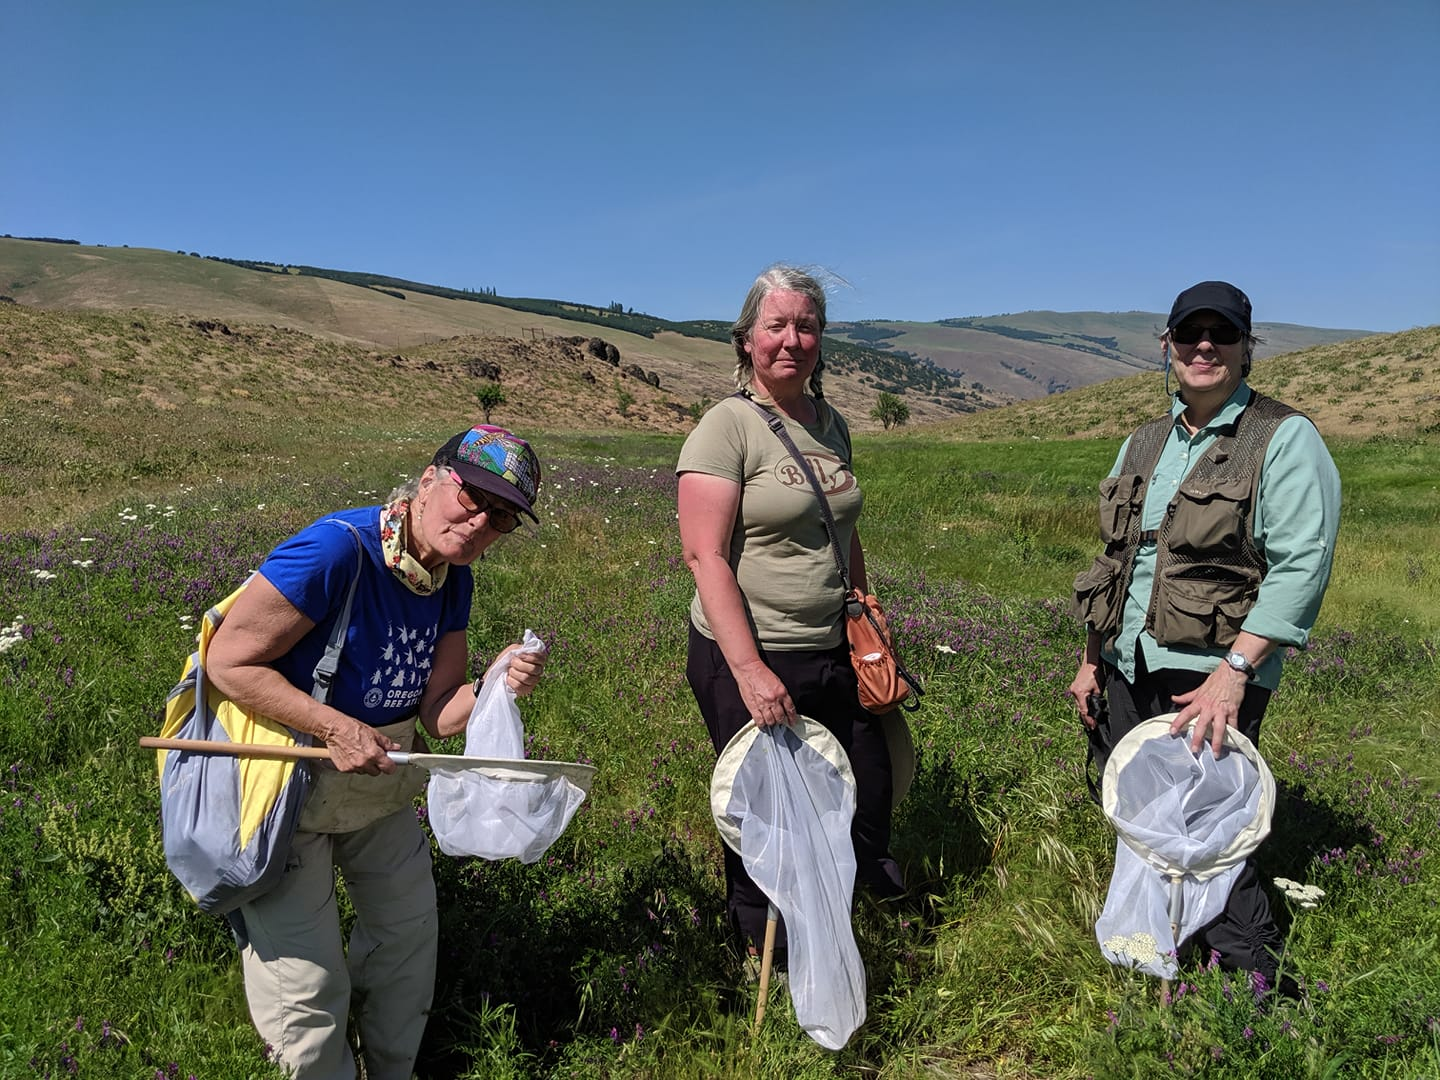 Elaine Rybak,  Pam Arion  and Martha Richards (from the Portland team) catching some great bees on vetch on June 1 at Four Sisters Columbia Land Trust site outside the Dalles. Elaine was able to get access to this site by reaching out to the Columbia Land Trust.